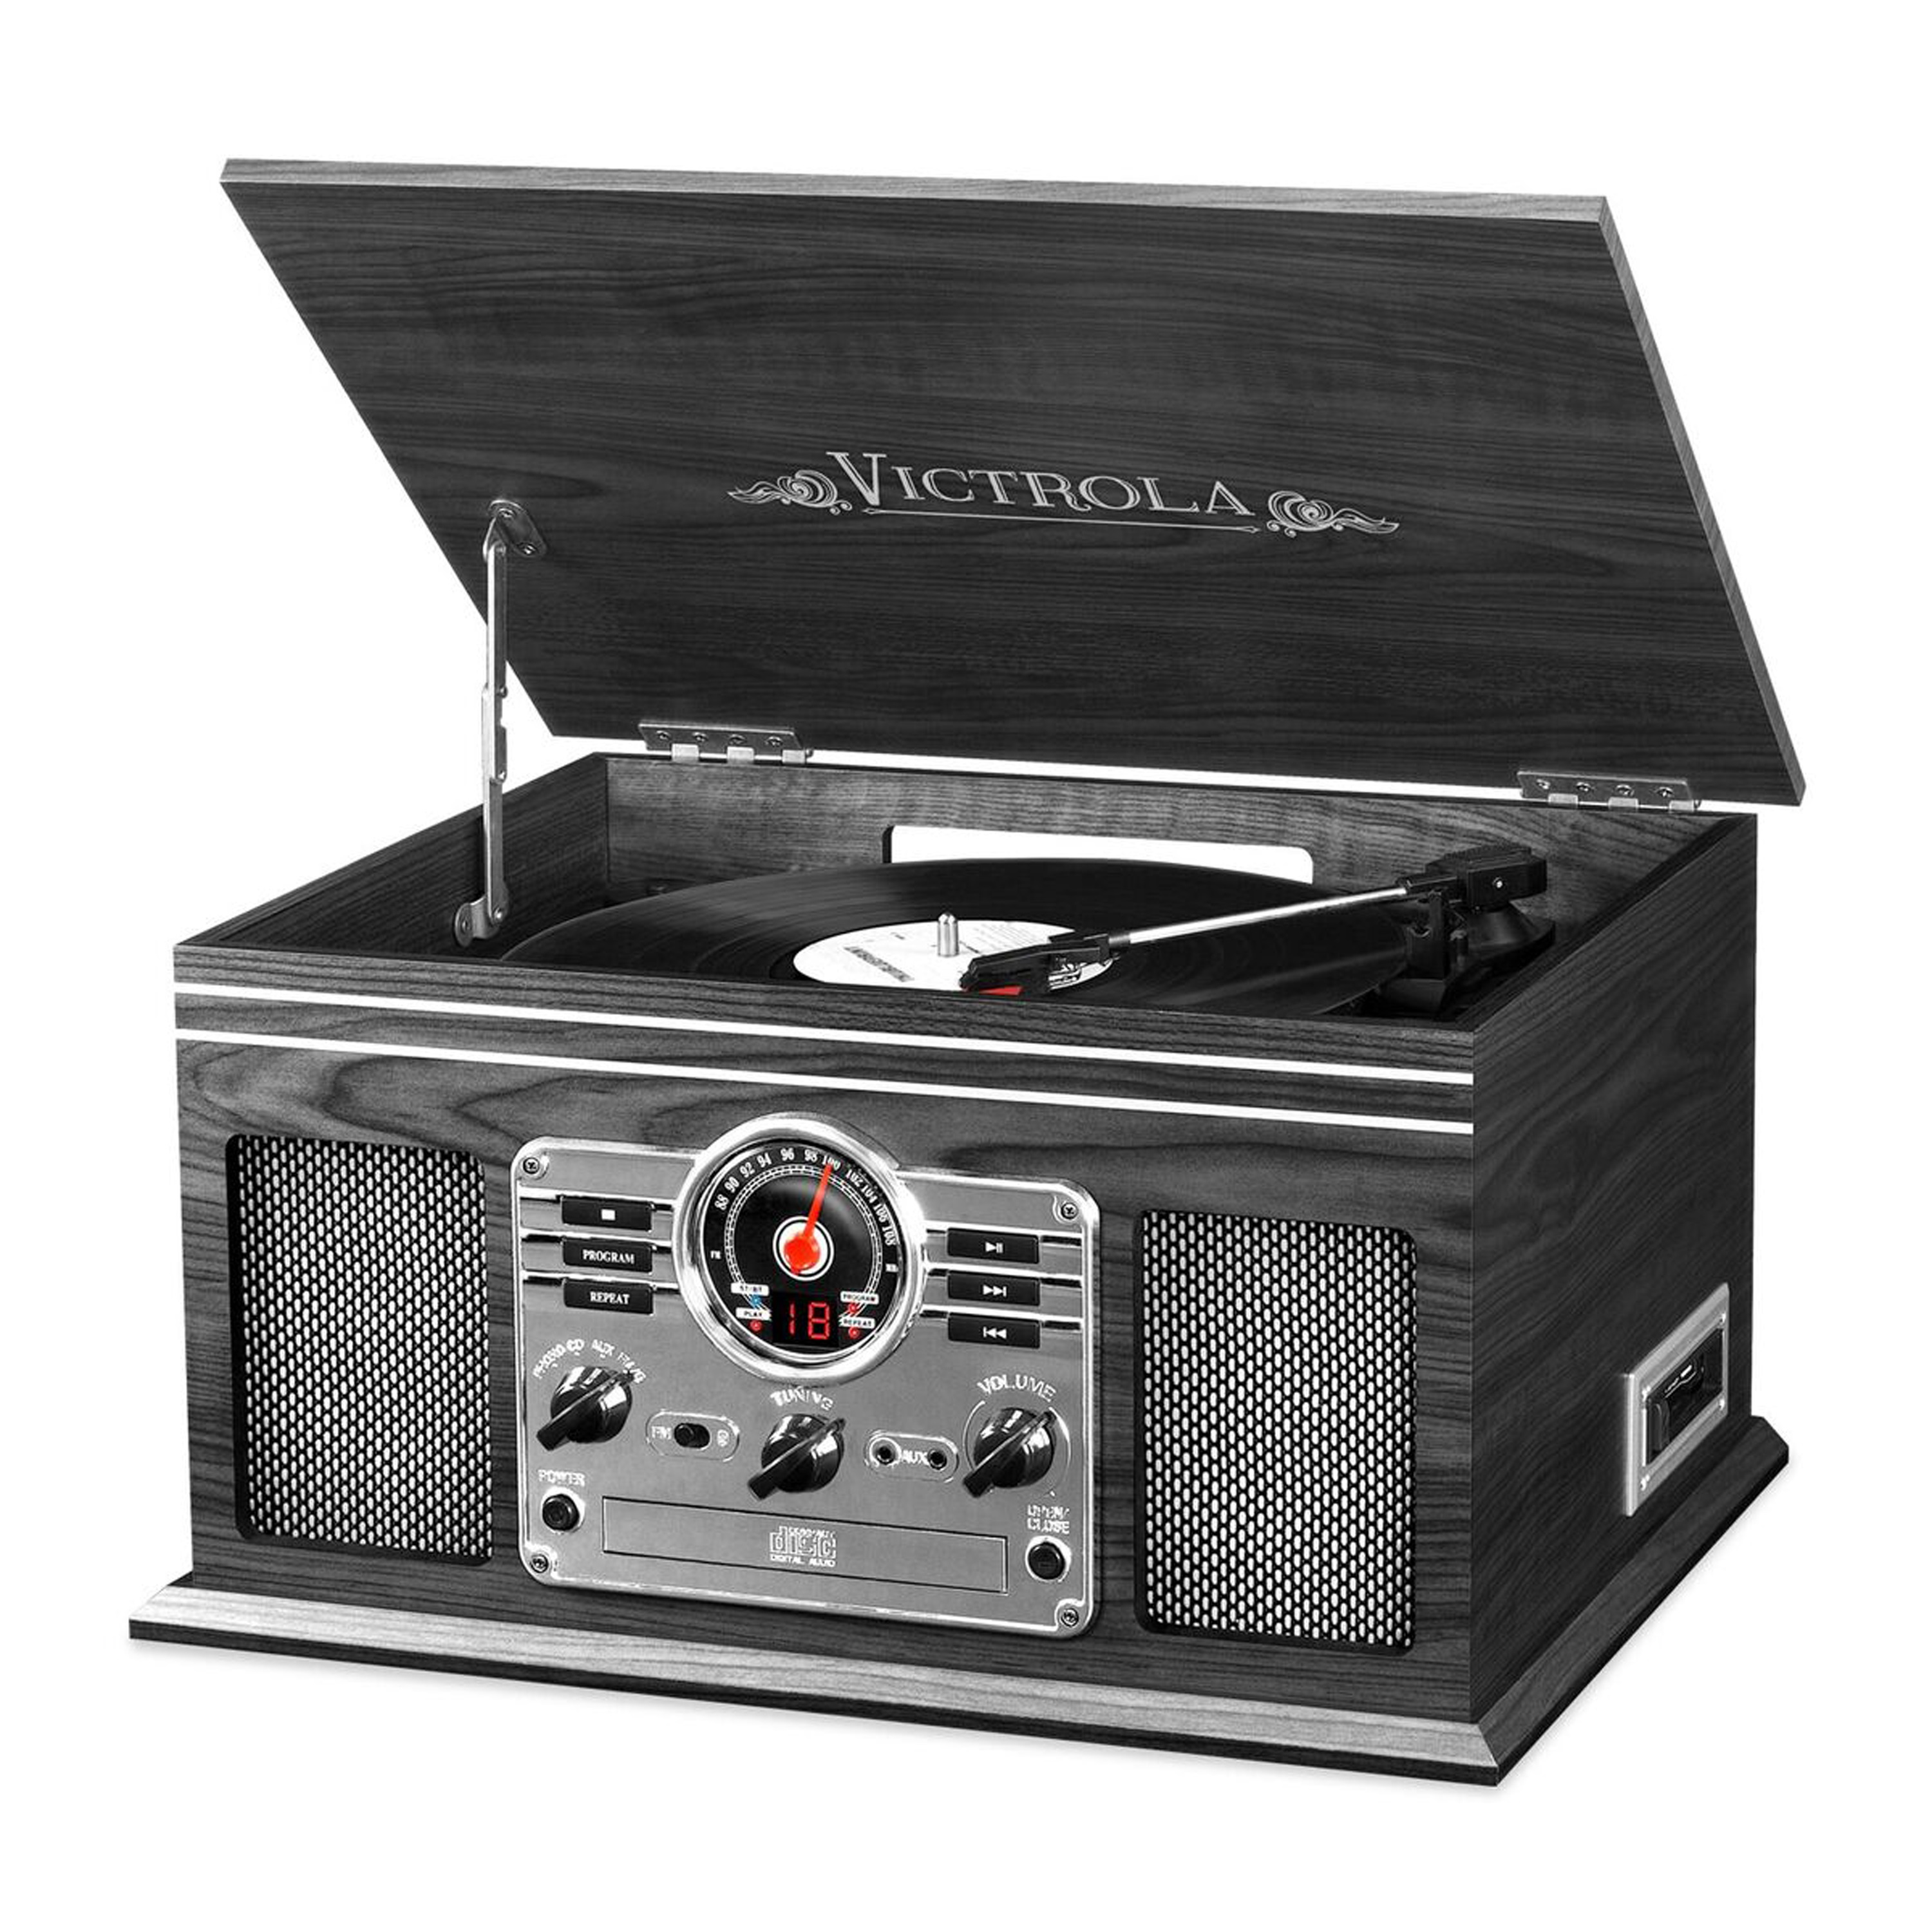 Innovative Technology 6-in-1 Victrola Entertainment Center